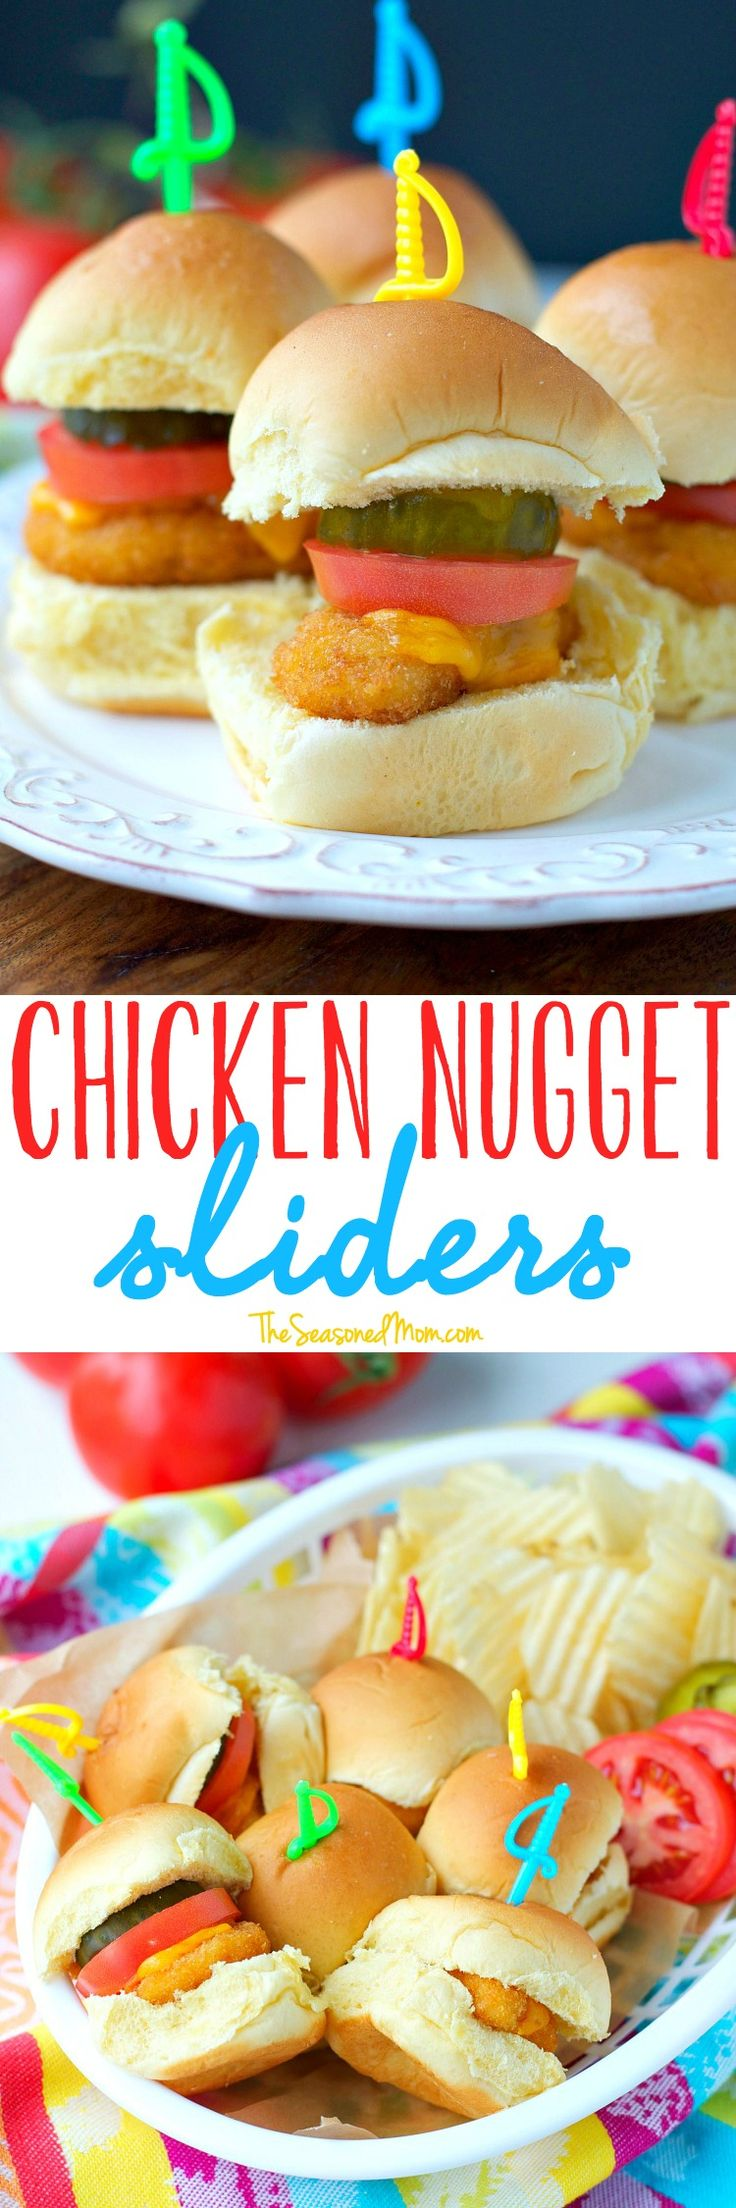 These 3-Ingredient cheesy Chicken Nugget Sliders are an easy football party food, appetizer, or tailgating snack that your hungry fans will devour! They also make weeknight dinner recipes EASY!